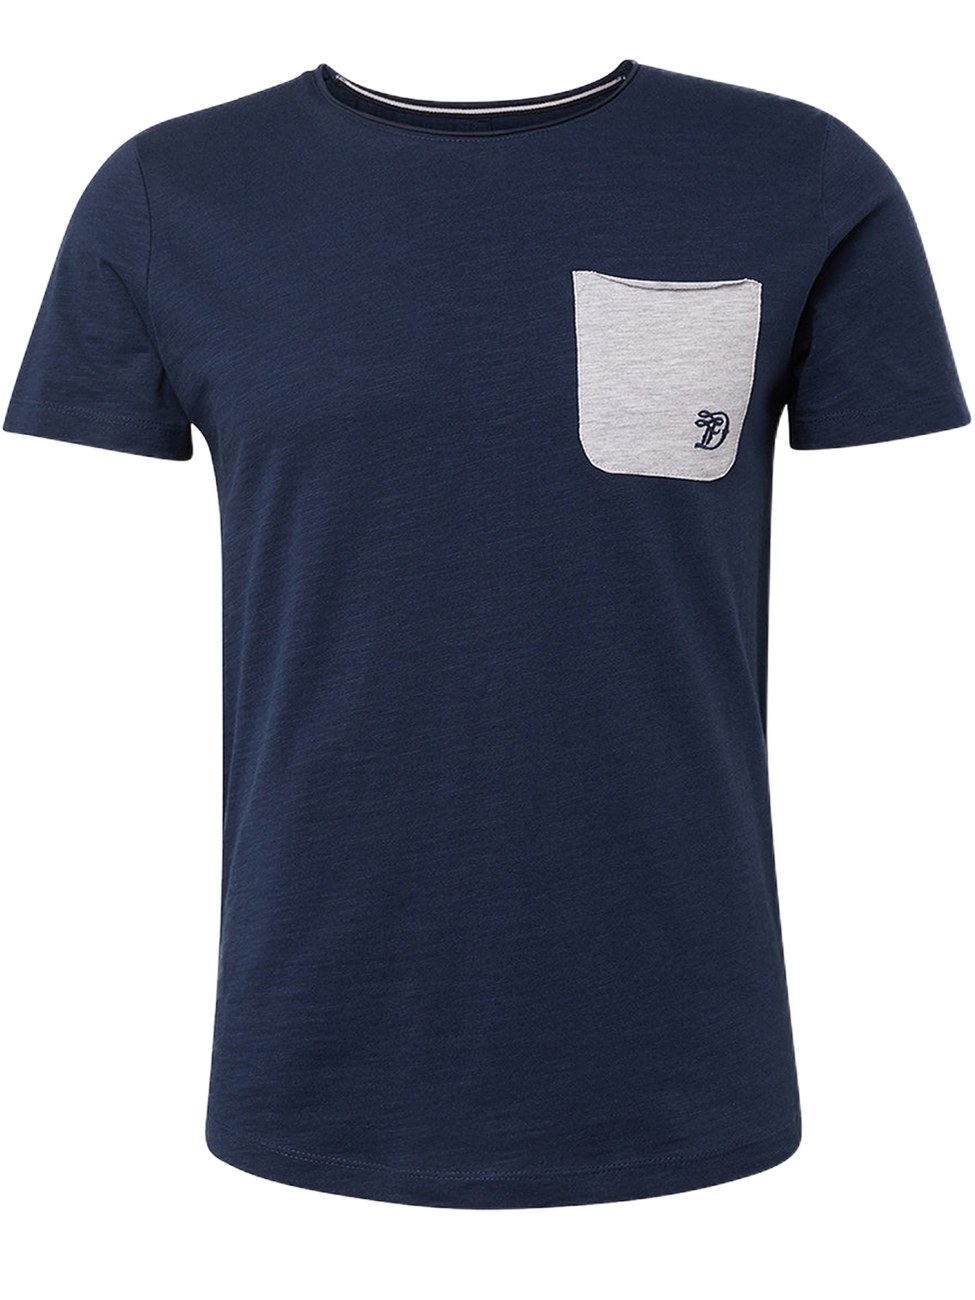 tom-tailor-denim-herren-t-shirt-mit-brusttasche